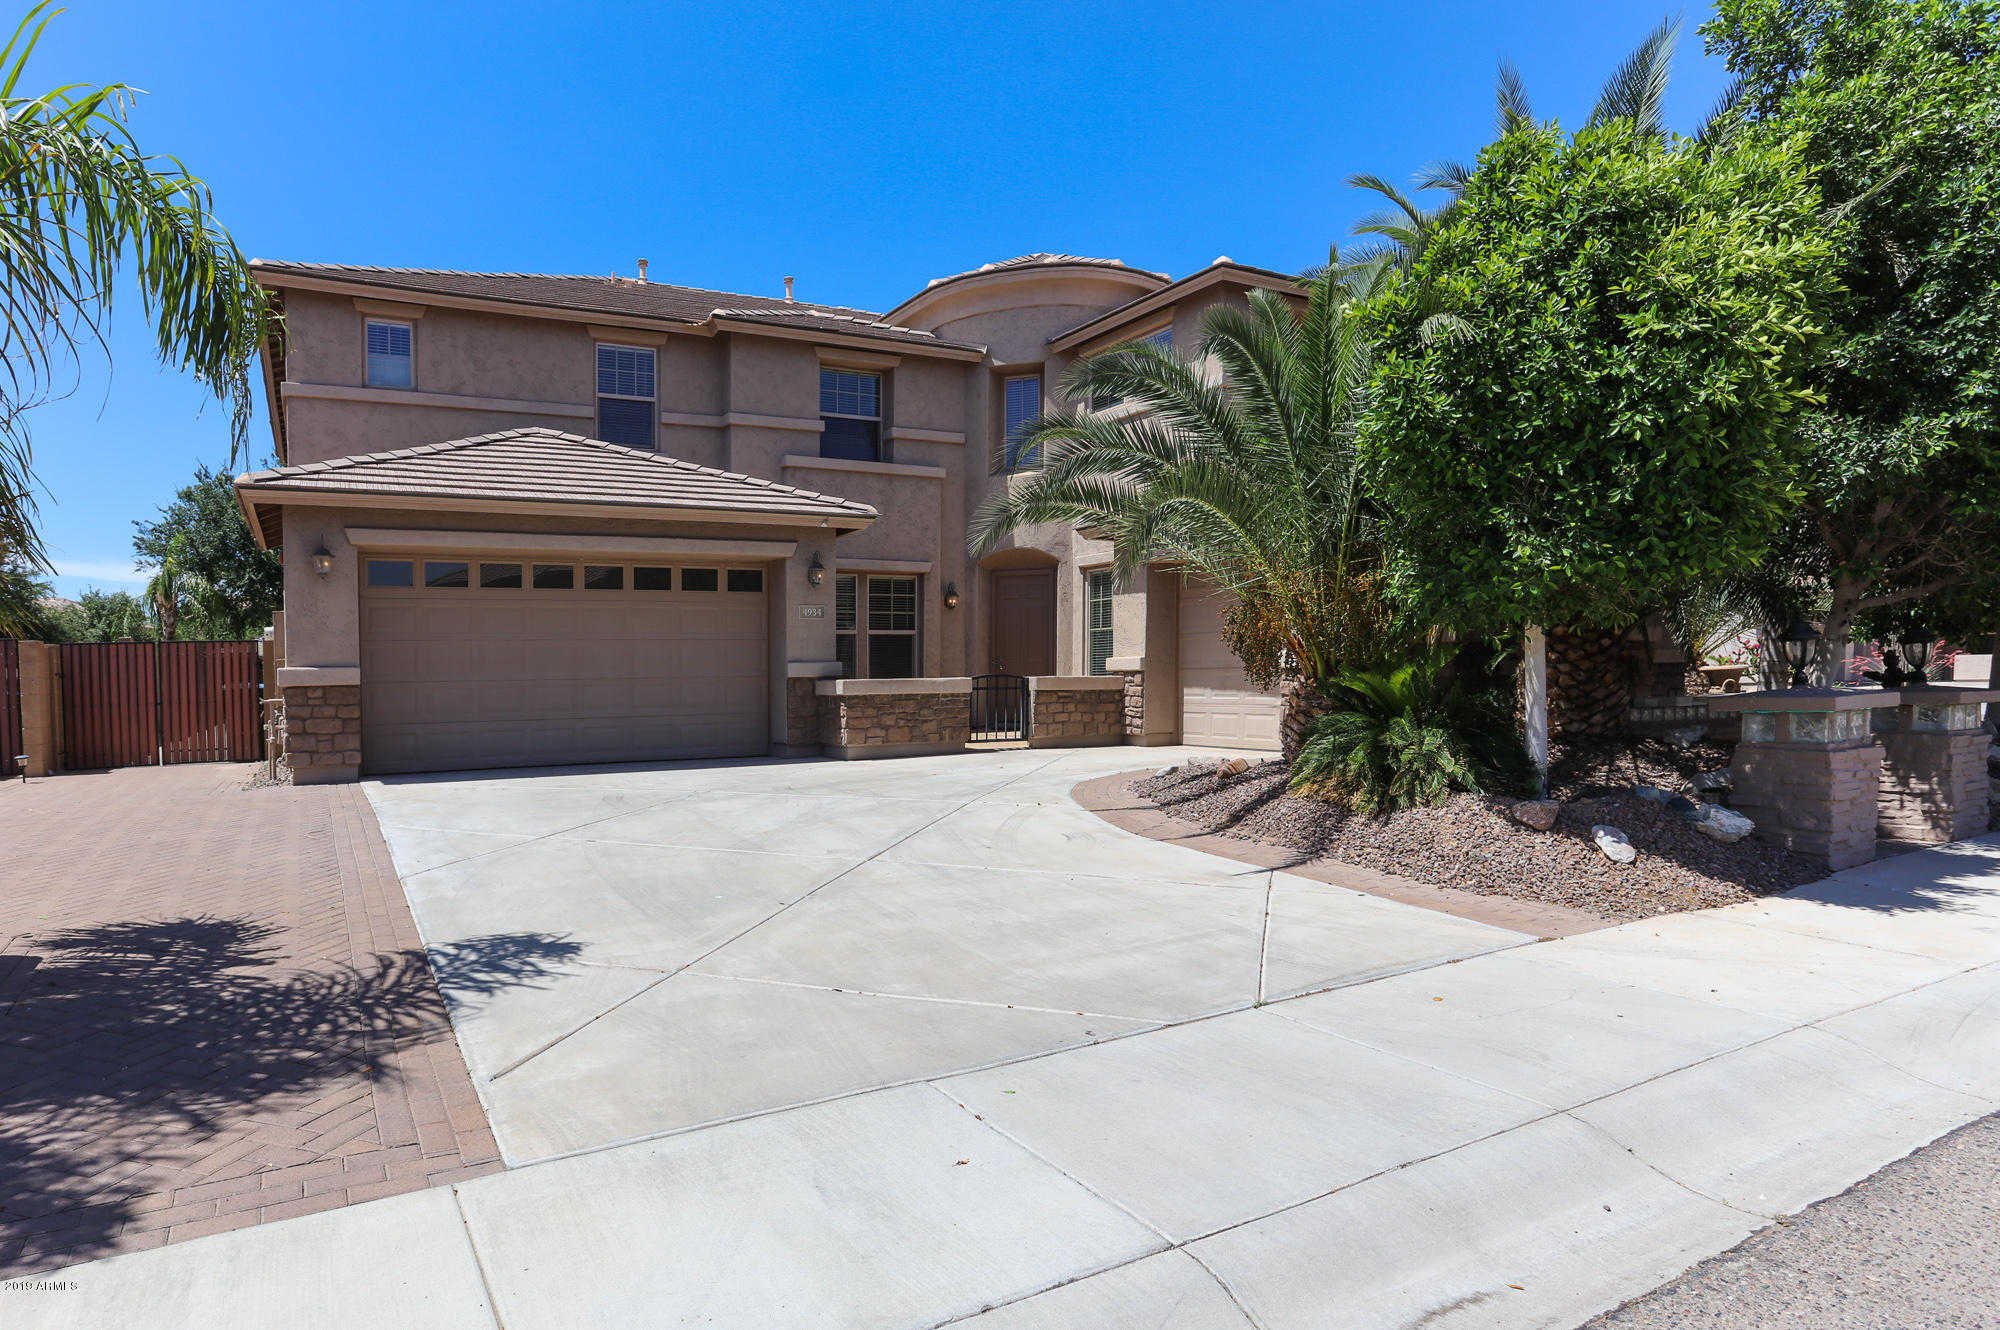 $476,900 - 6Br/5Ba - Home for Sale in Stetson Valley Parcels 7 8 9 10, Phoenix